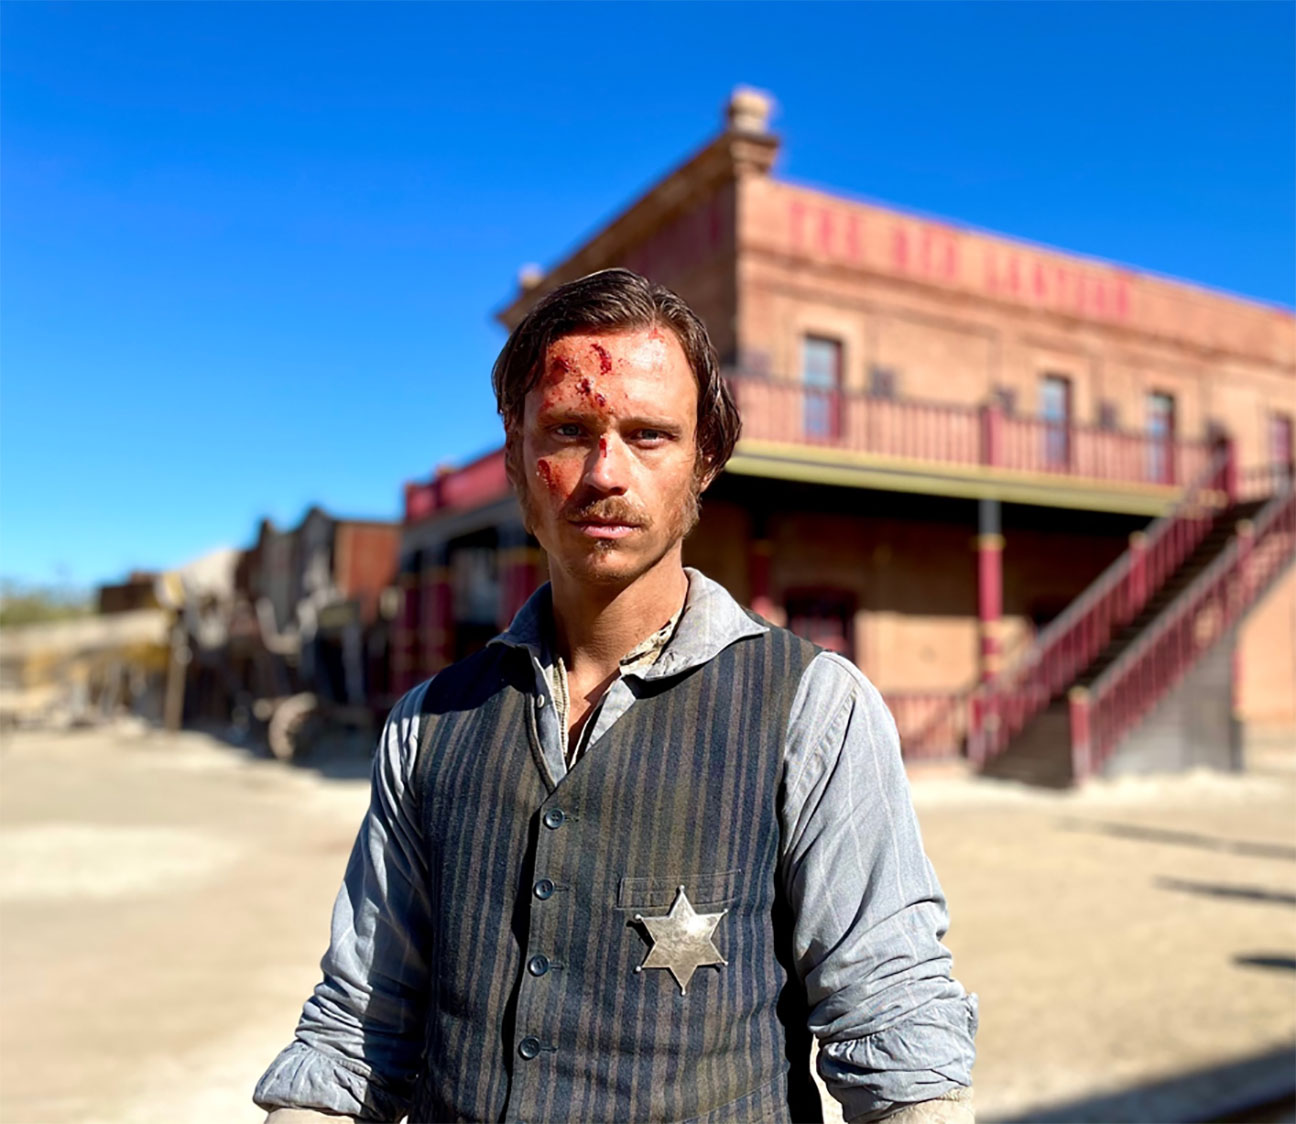 In this photo from the production set, Actor Nicolo Pasetti stanmds in front of an old west building wearing cowboy gear, a tin star on his chest and bruises on his face, on the set of That Dirty Black Bag, upcoming TV series